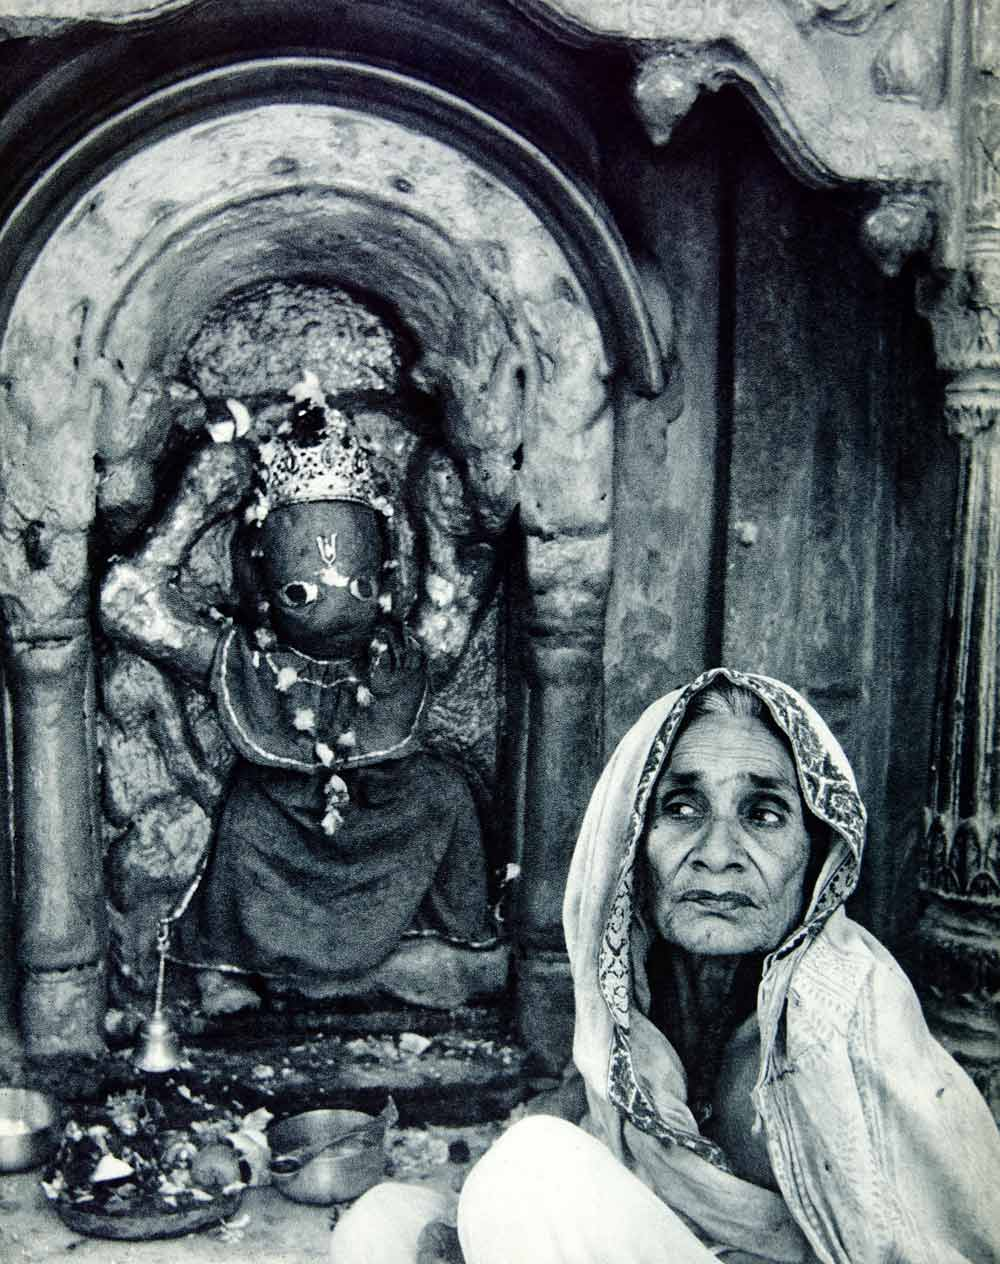 1955 Rotogravure Hinduism Shrine Hanuman Monkey God Deity Worship Temple XGRC8